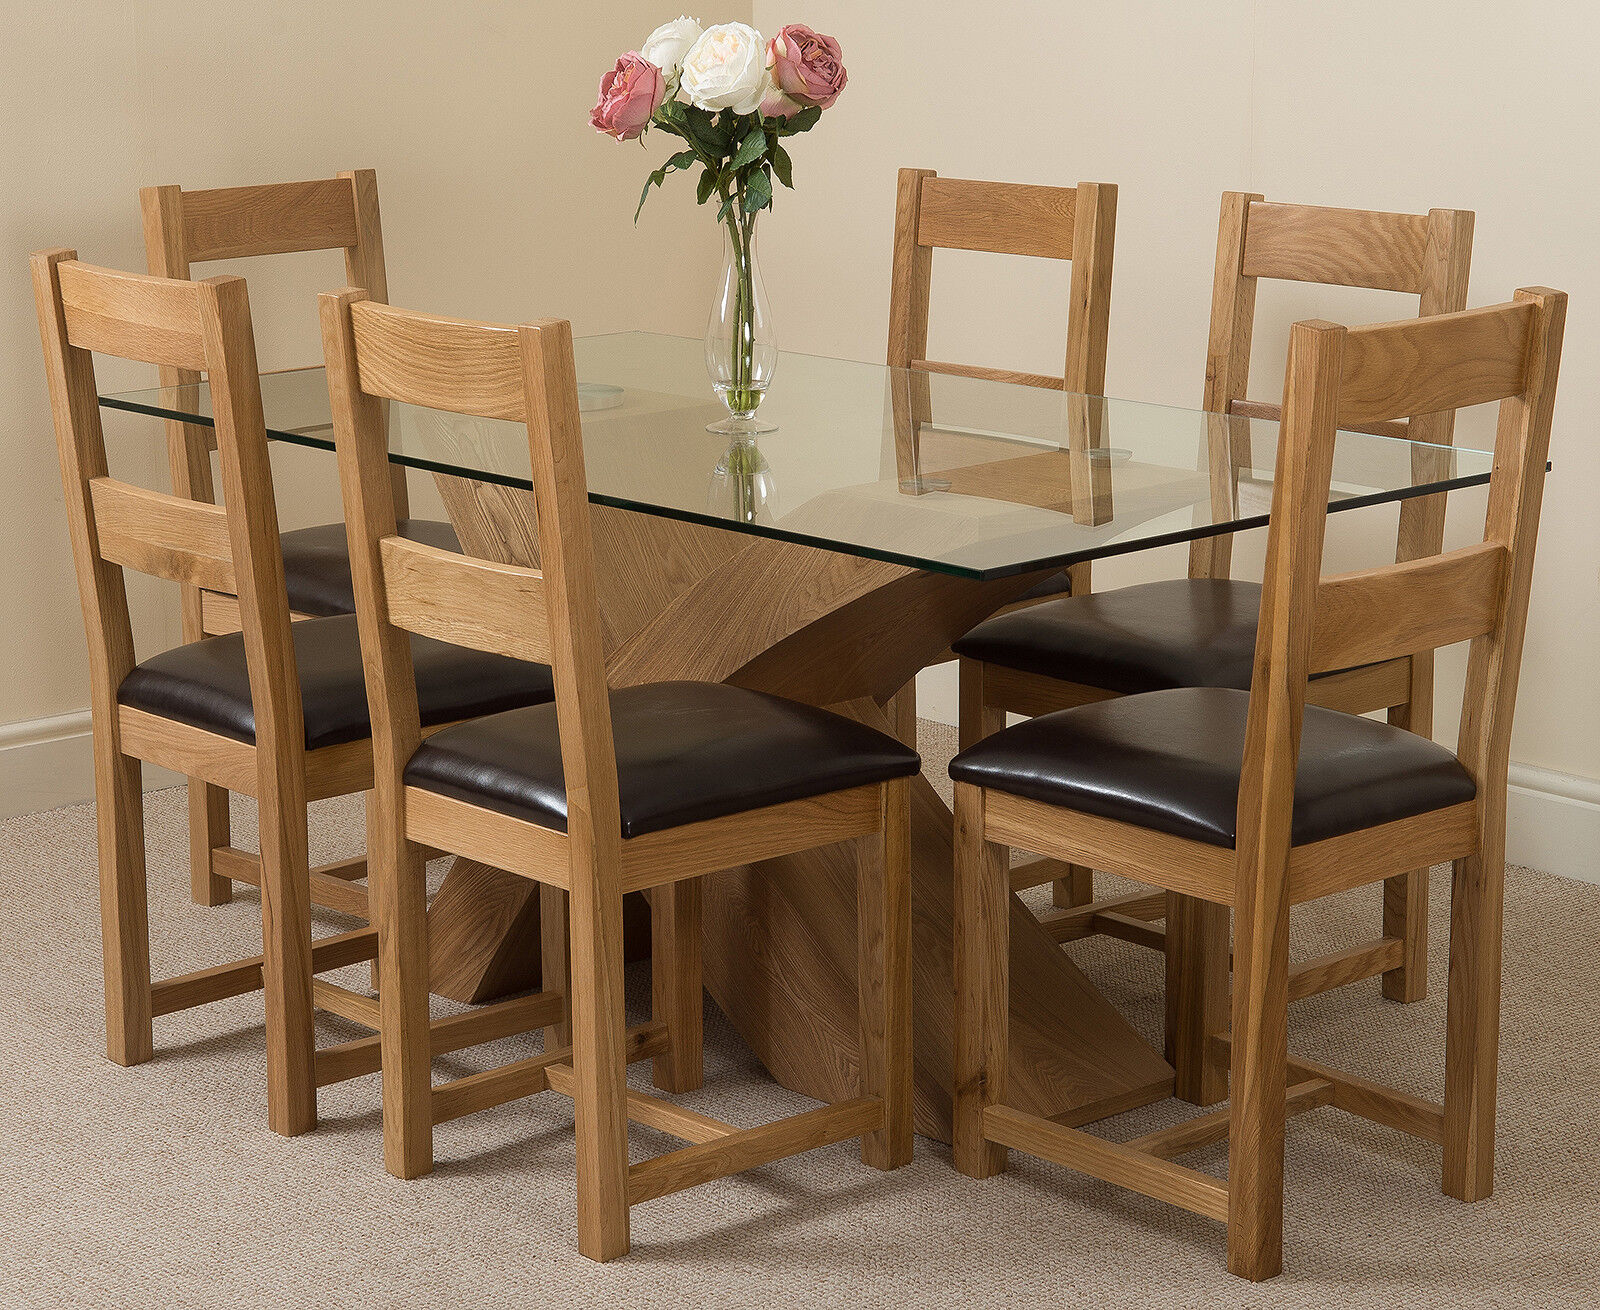 Small Dining Table Set For 4, Valencia Oak Small Glass Dining Table With 4 Or 6 Lincoln Oak Chairs Ebay